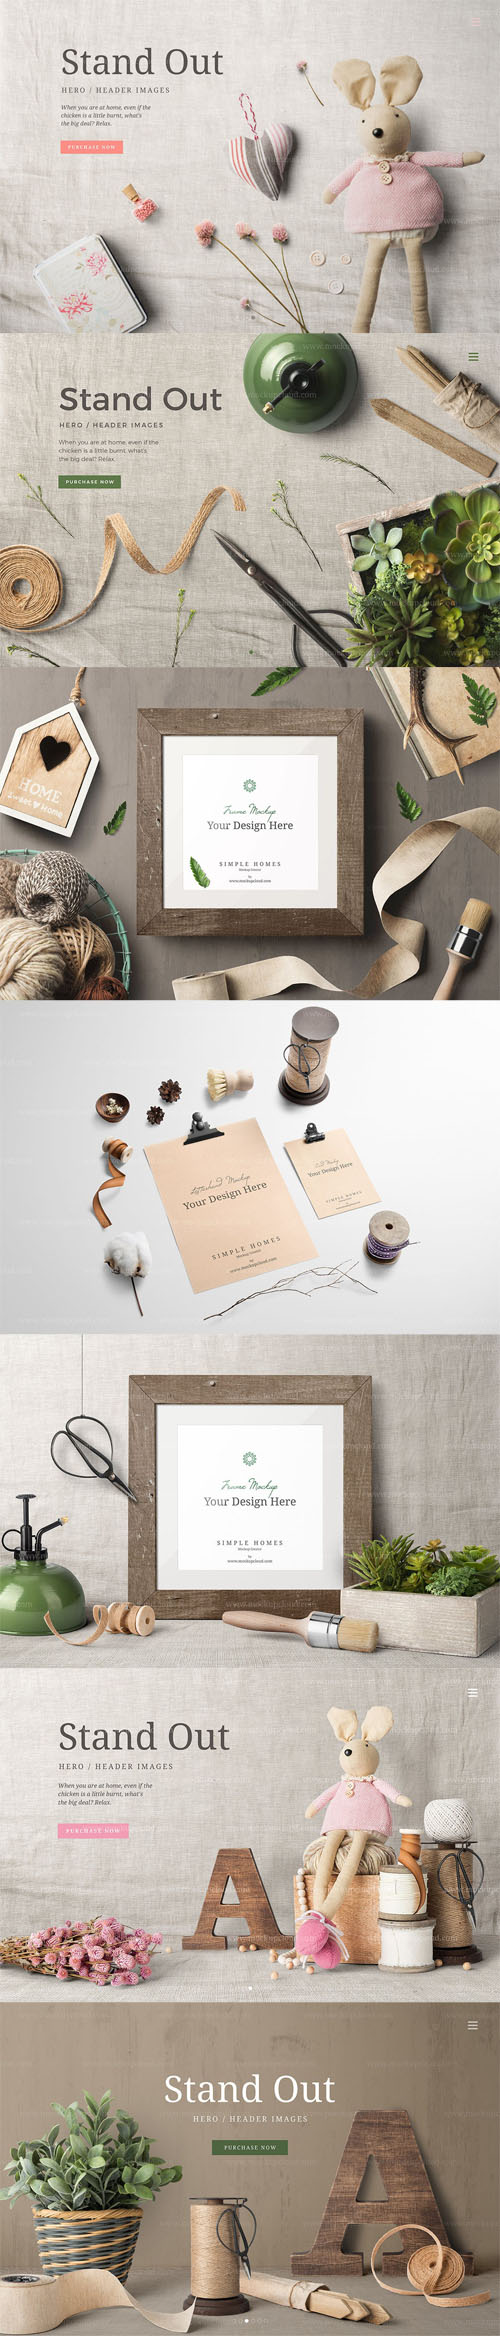 PSD Simple Homes Mockup Vol. 7